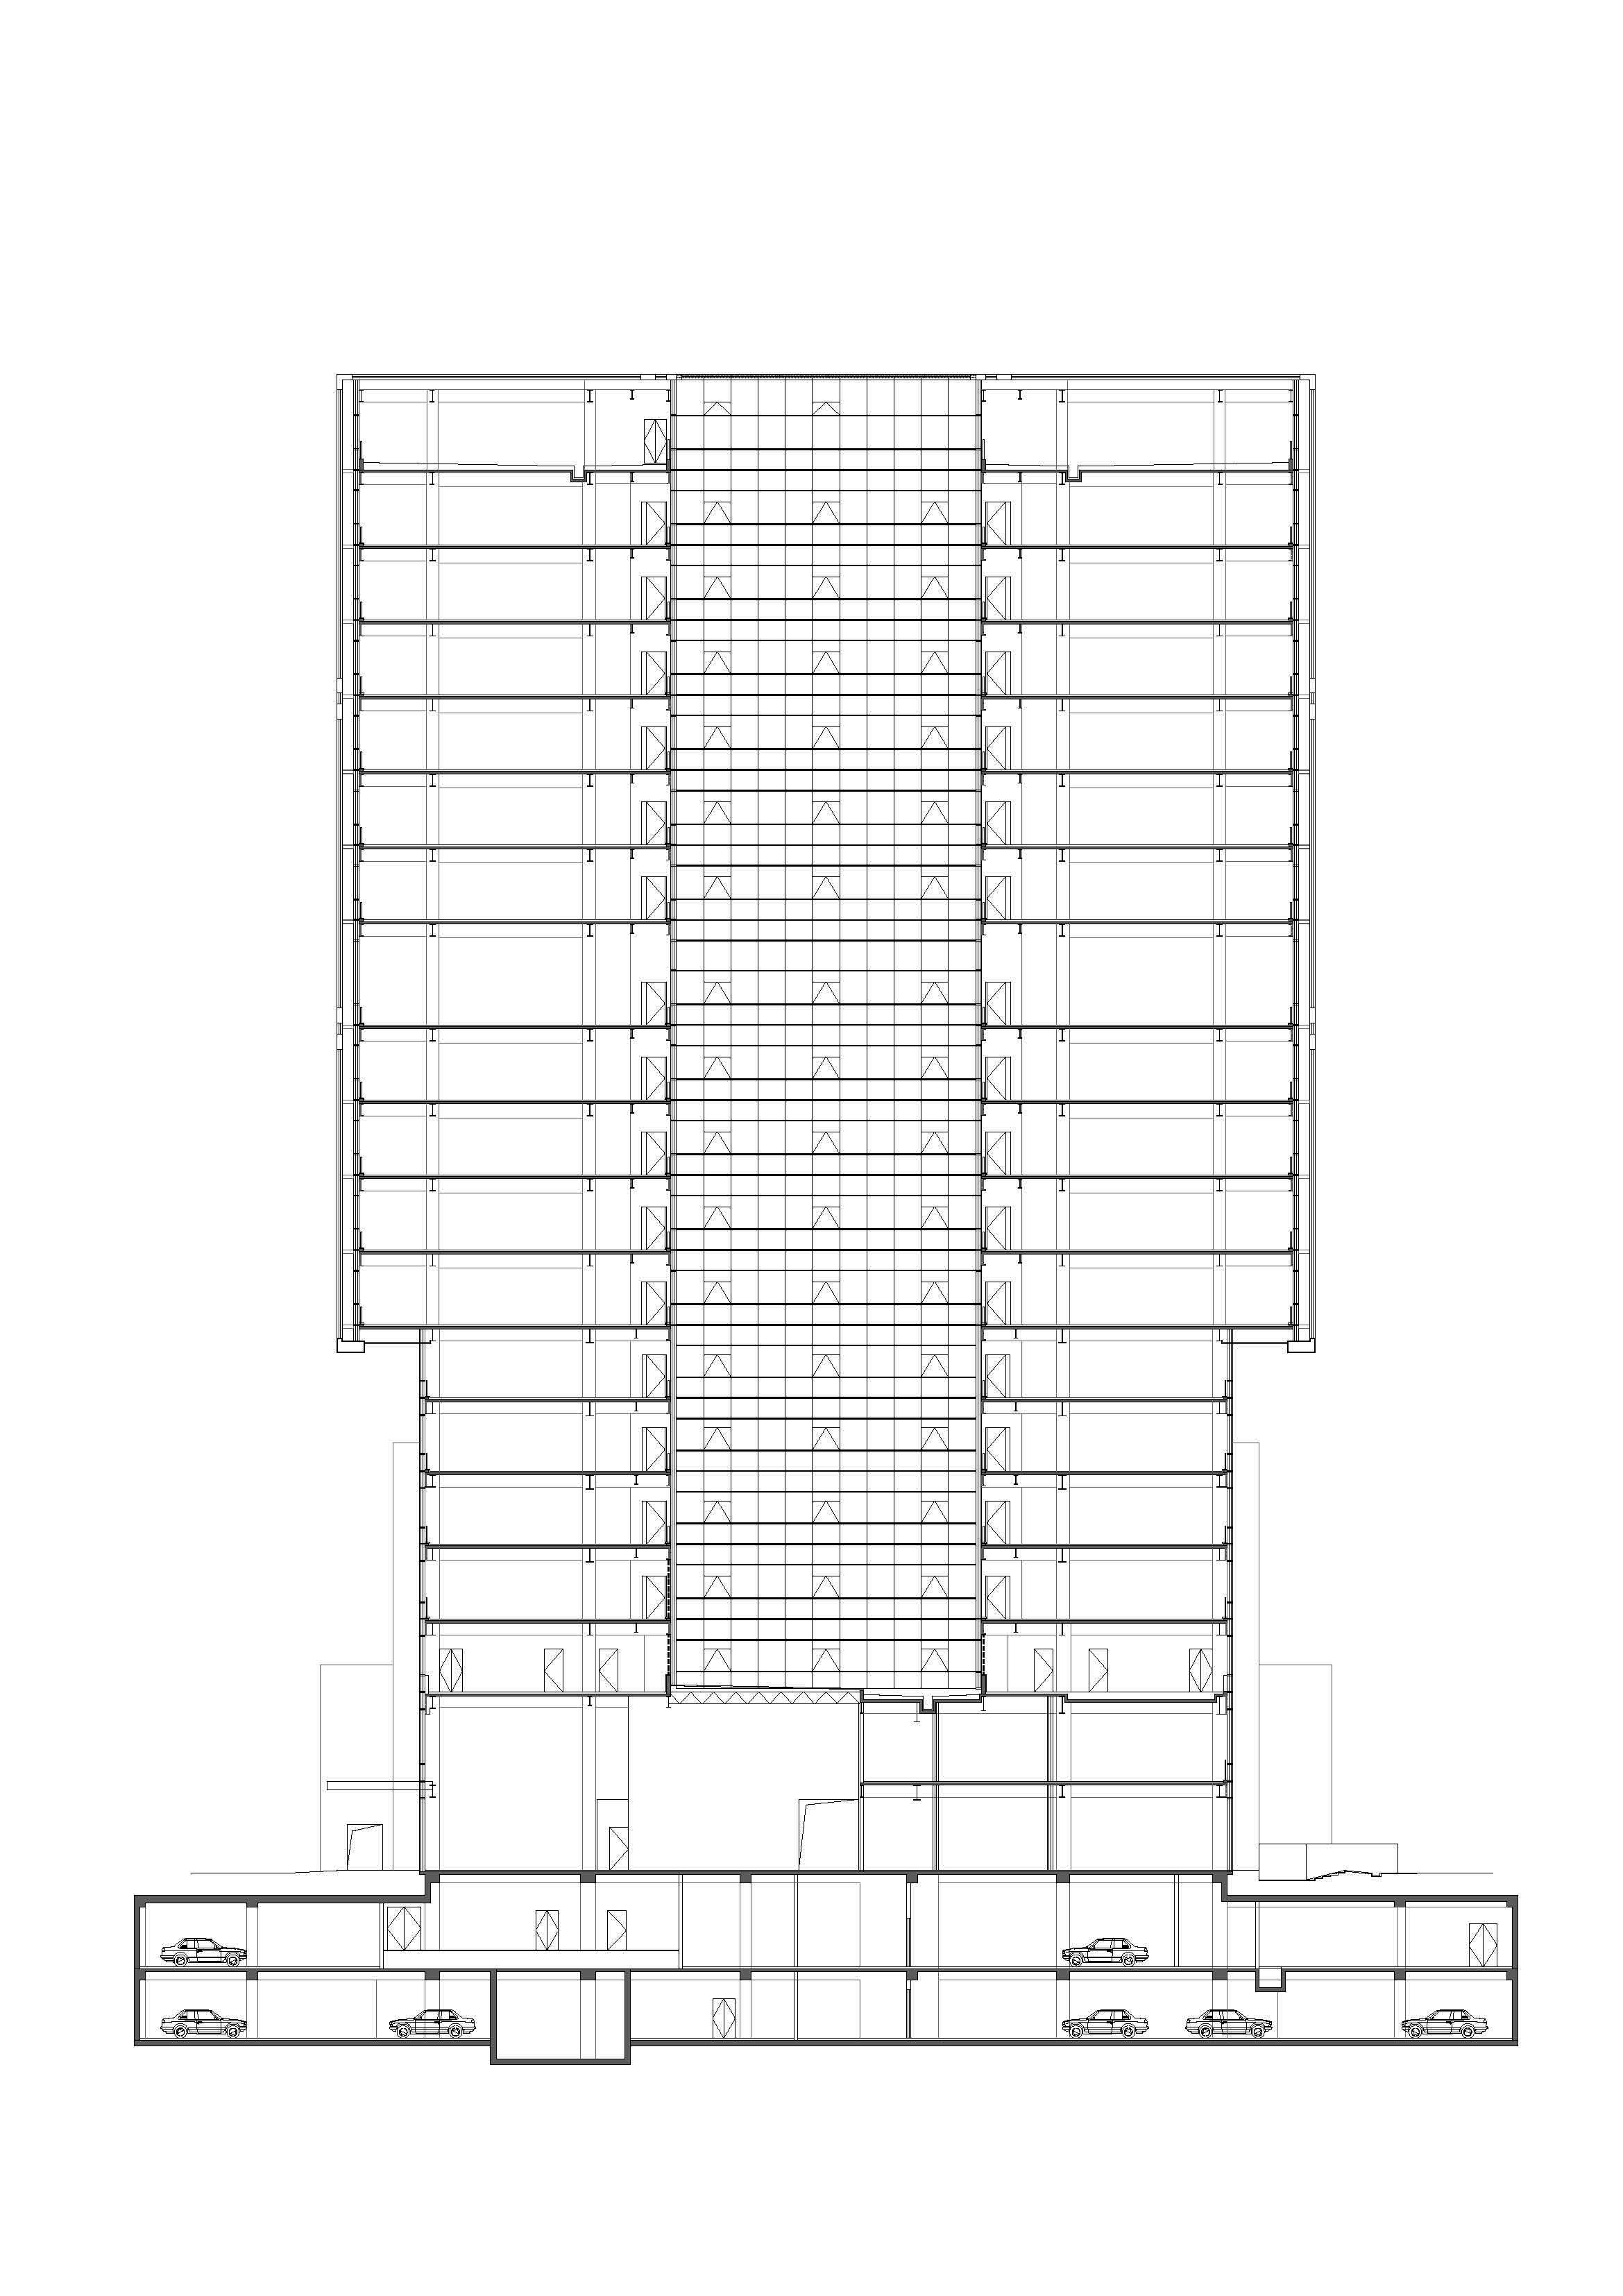 Section The Architectural Design & Research Institute of Zhejiang University Co., Ltd.}